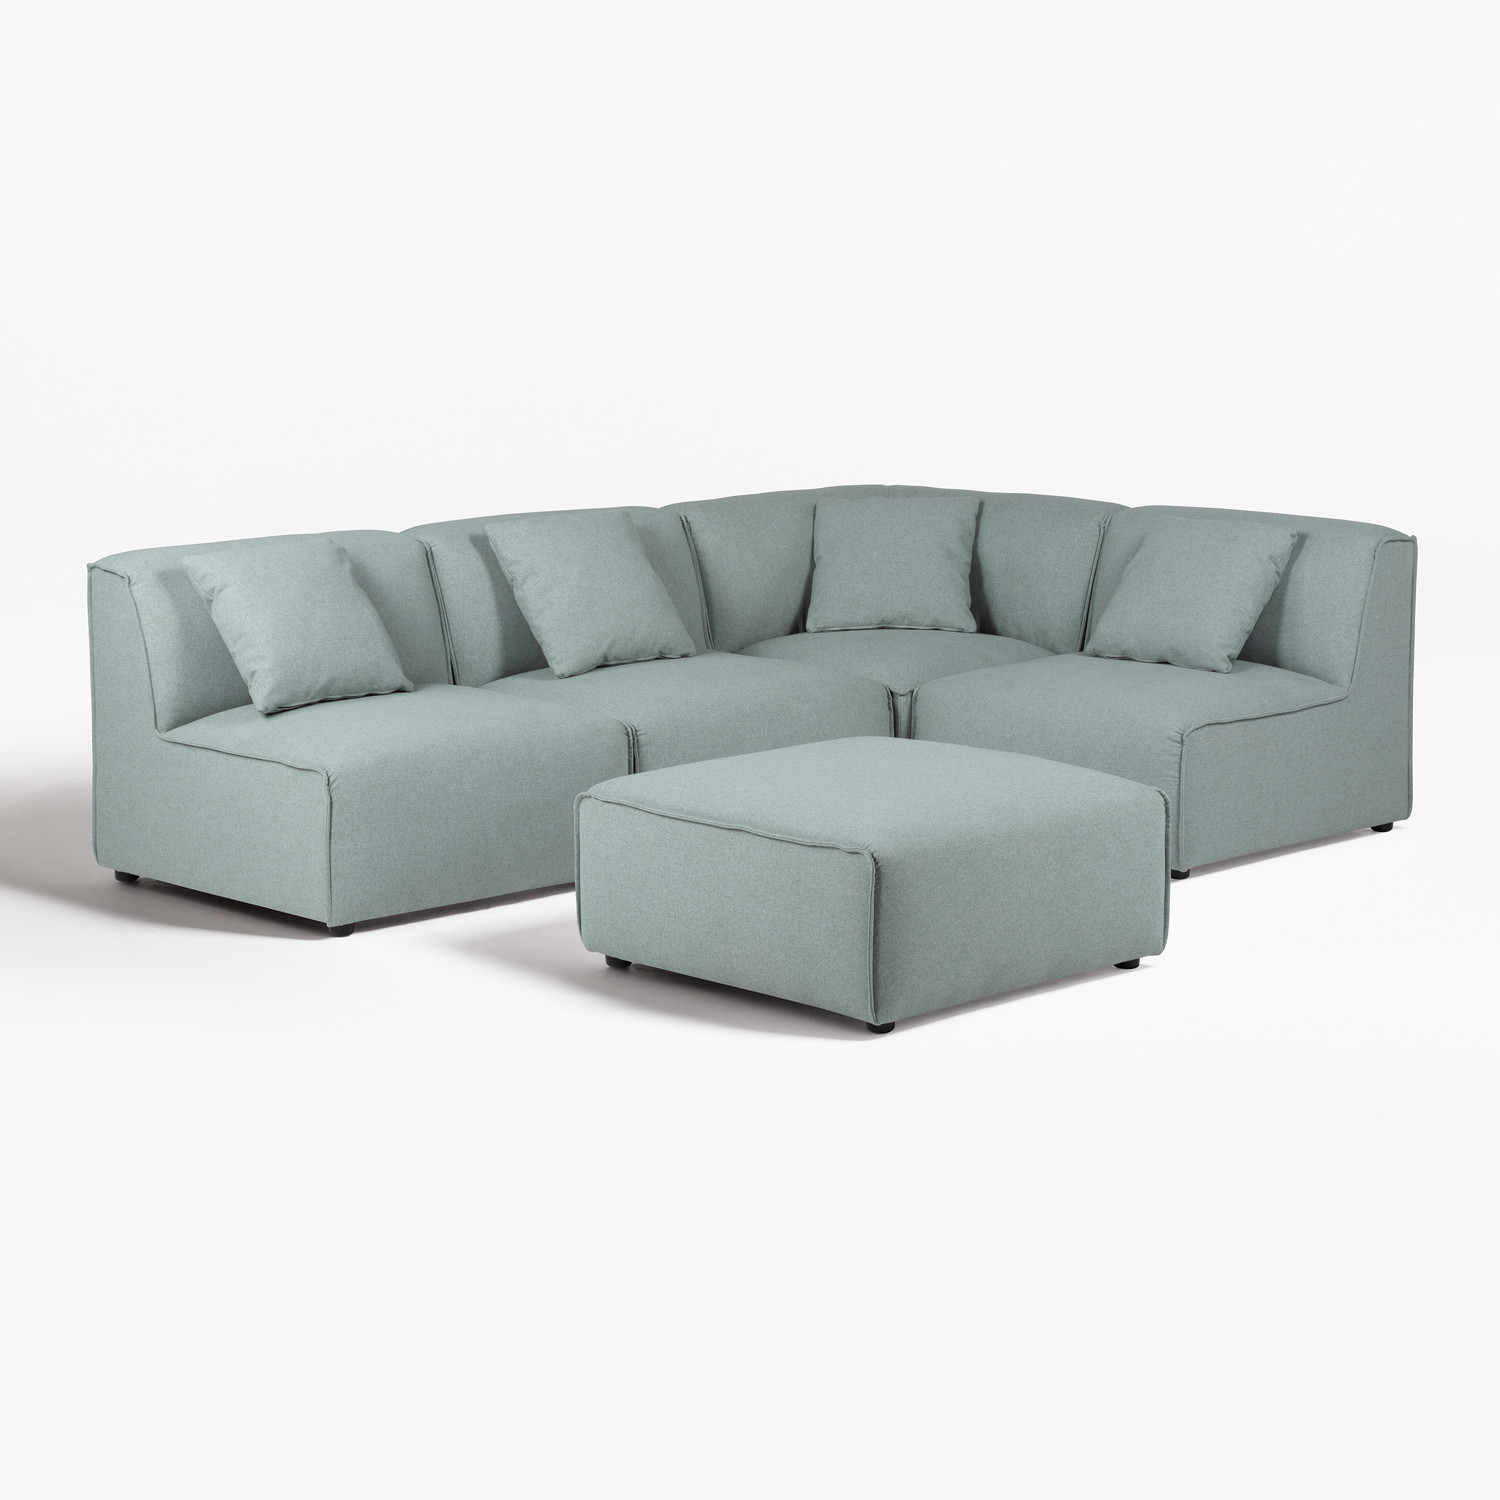 4 seater Modular Sofa & Pouffe Aremy, gallery image 1